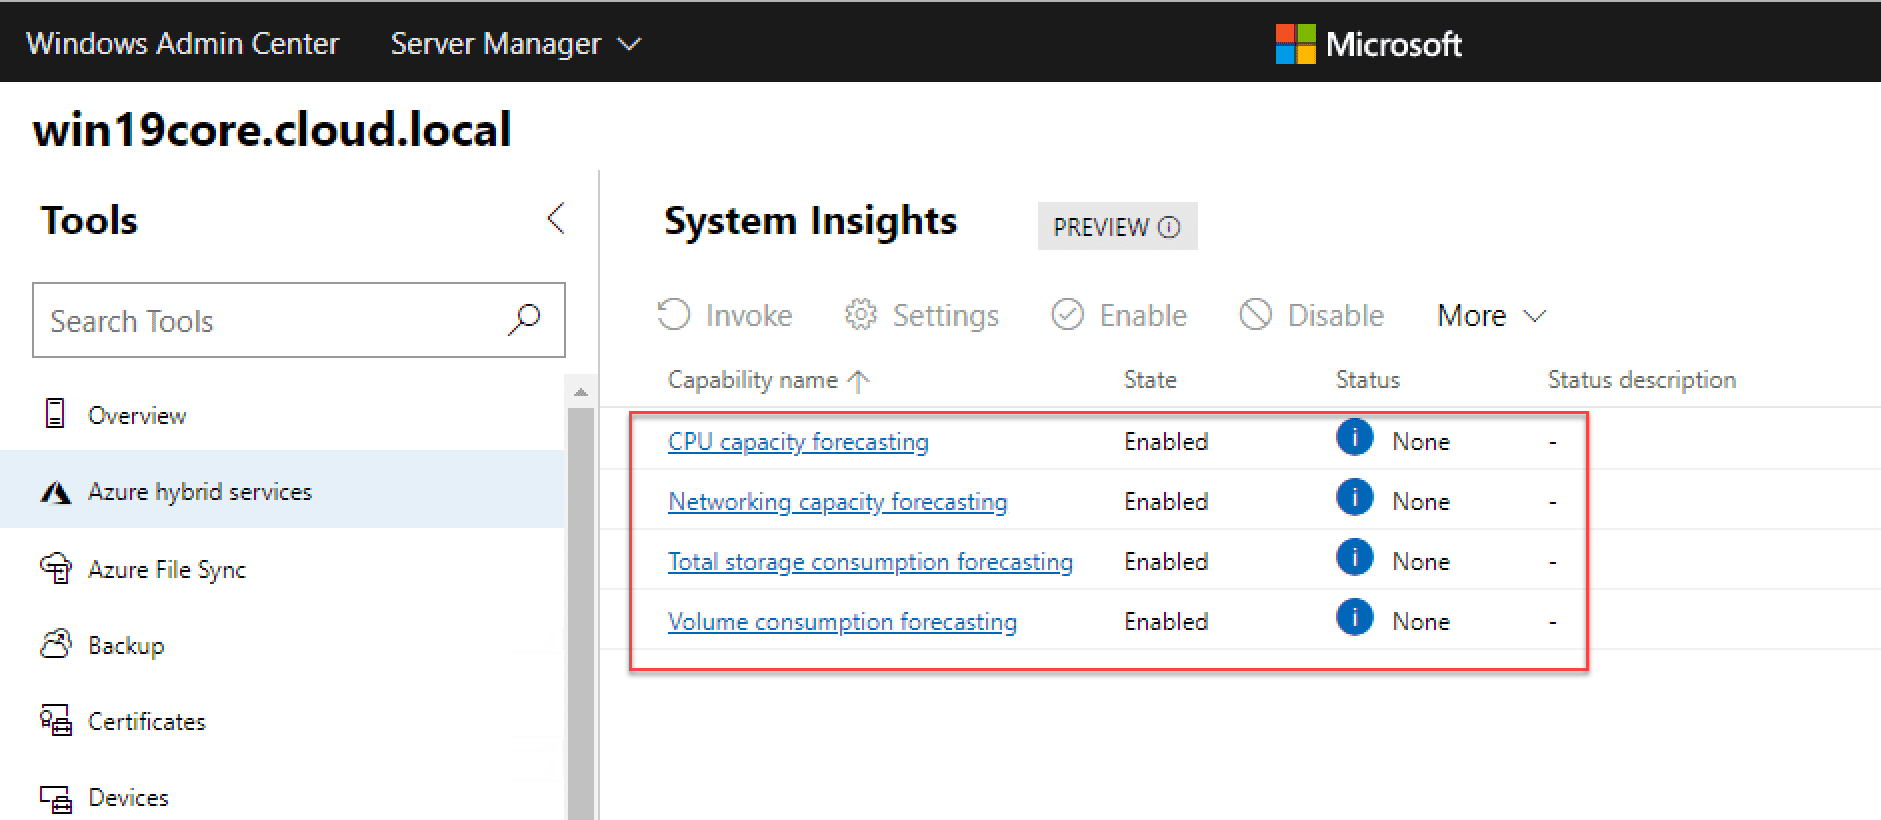 System-Insights-information-gathering-for-Windows-Server-2019-Core Managing Windows Server 2019 Core with Windows Admin Center